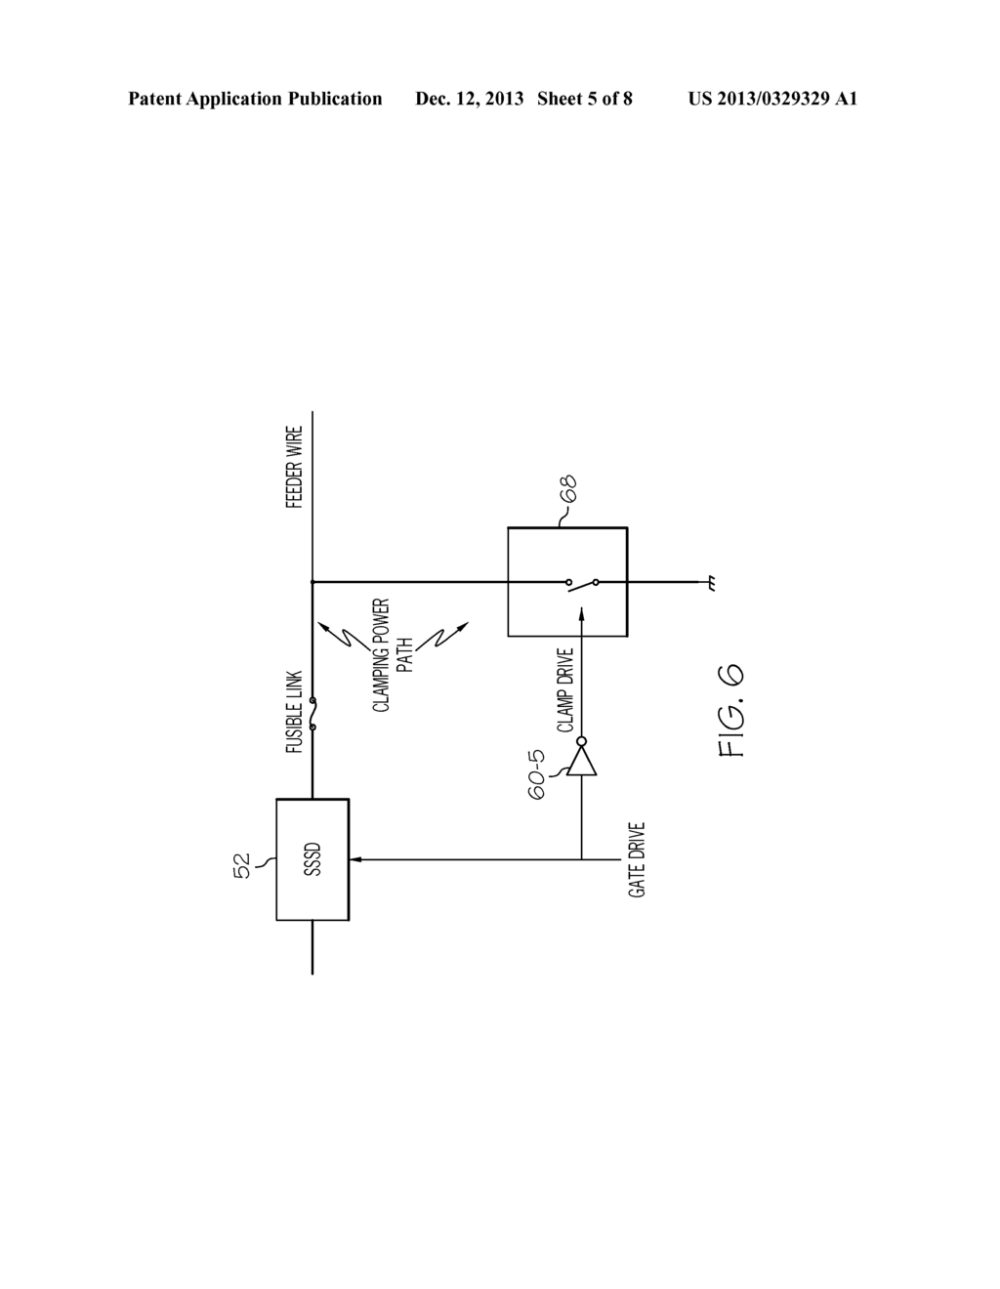 medium resolution of solid state power control system for aircraft high voltage dc power distribution diagram schematic and image 06